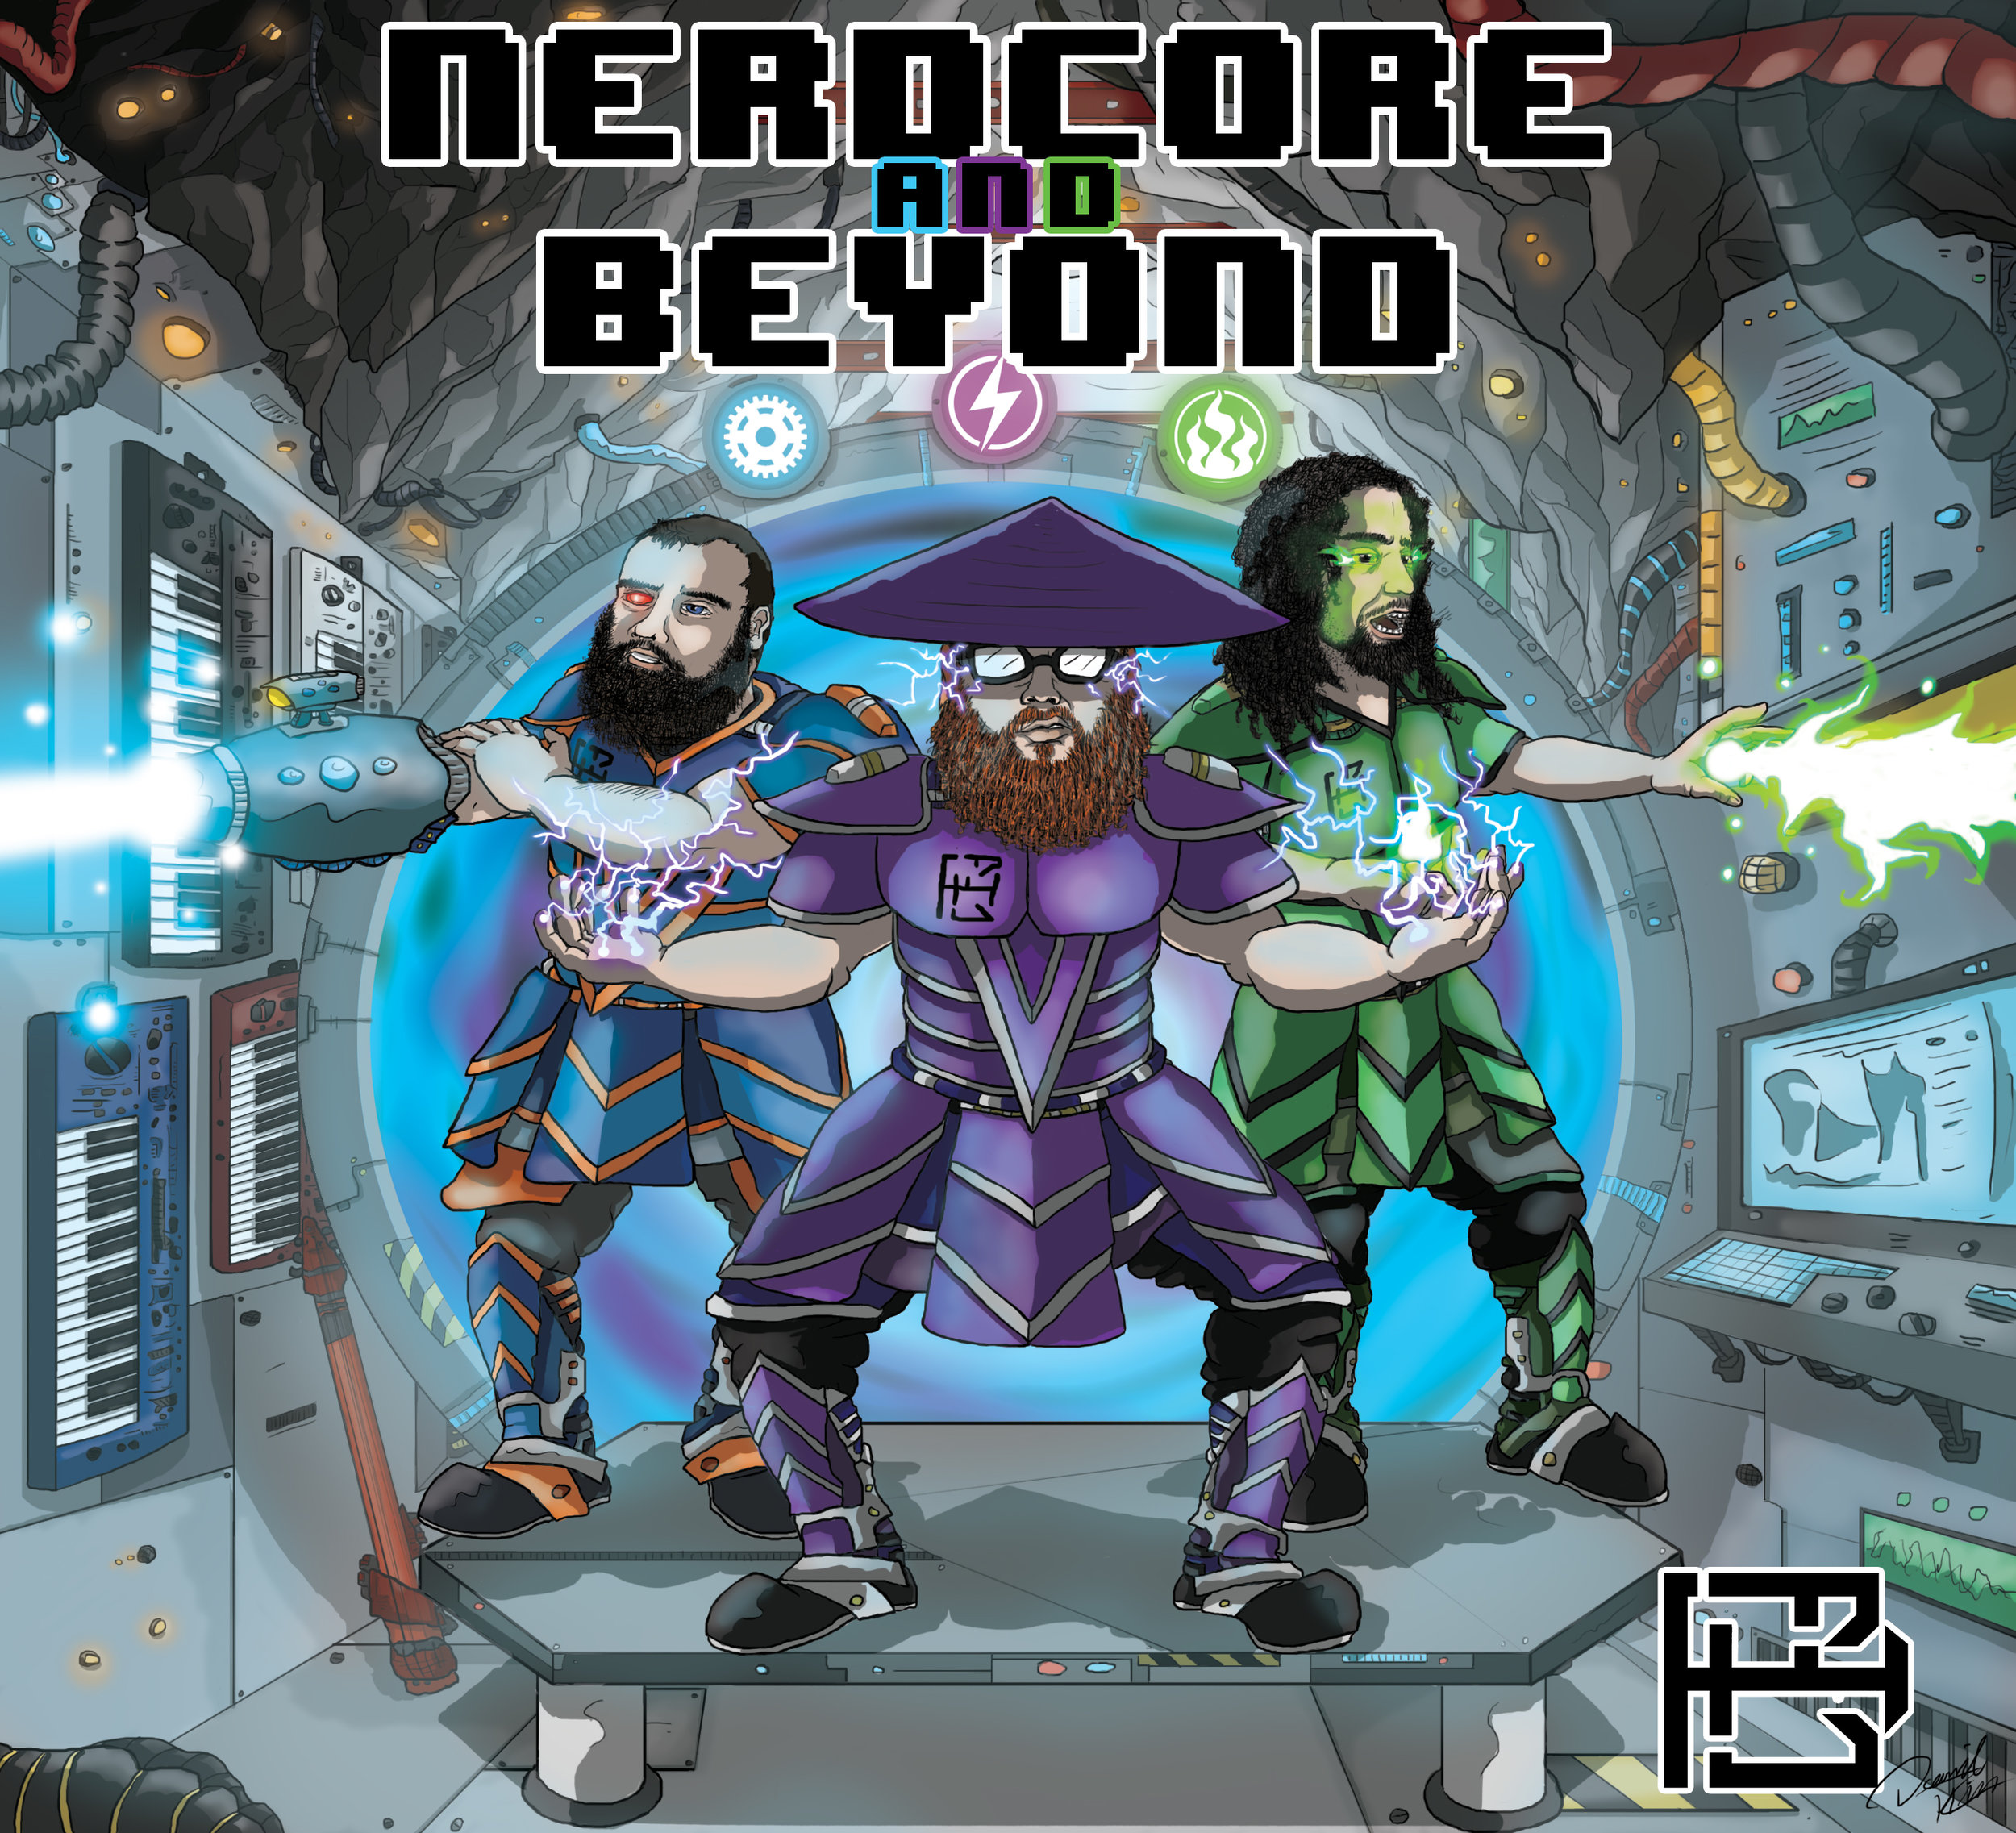 Nerdcore & Beyond, By Bitforce.  This was an epic project that not only saw me work with my first non-hip hop music clients, but also tackled lots of new work that included a huge pixel art piece and even an animated display of the album art.